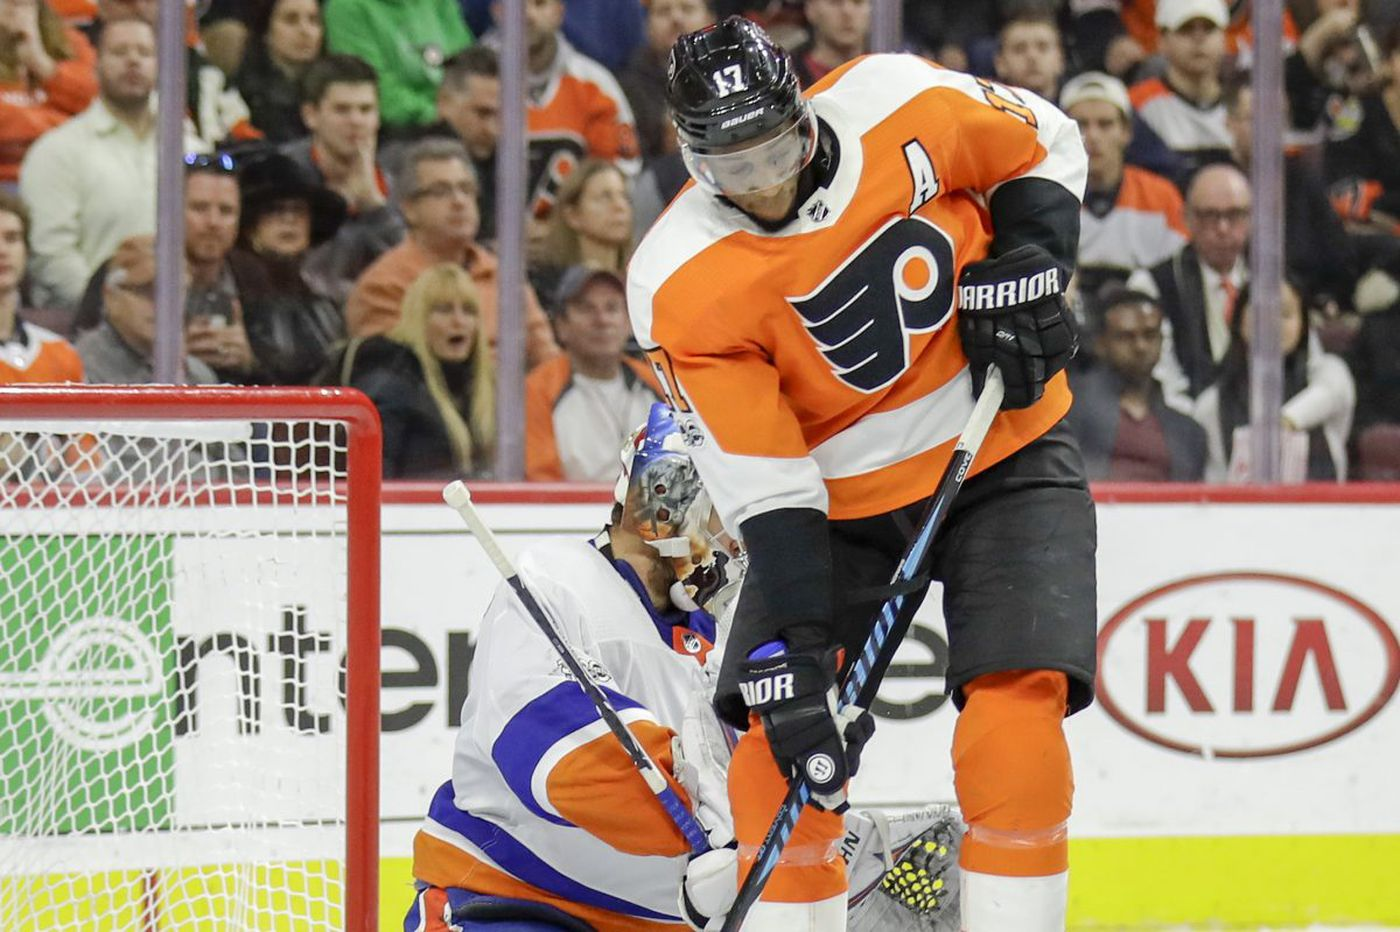 Former Flyer Wayne Simmonds signs with rival New Jersey Devils